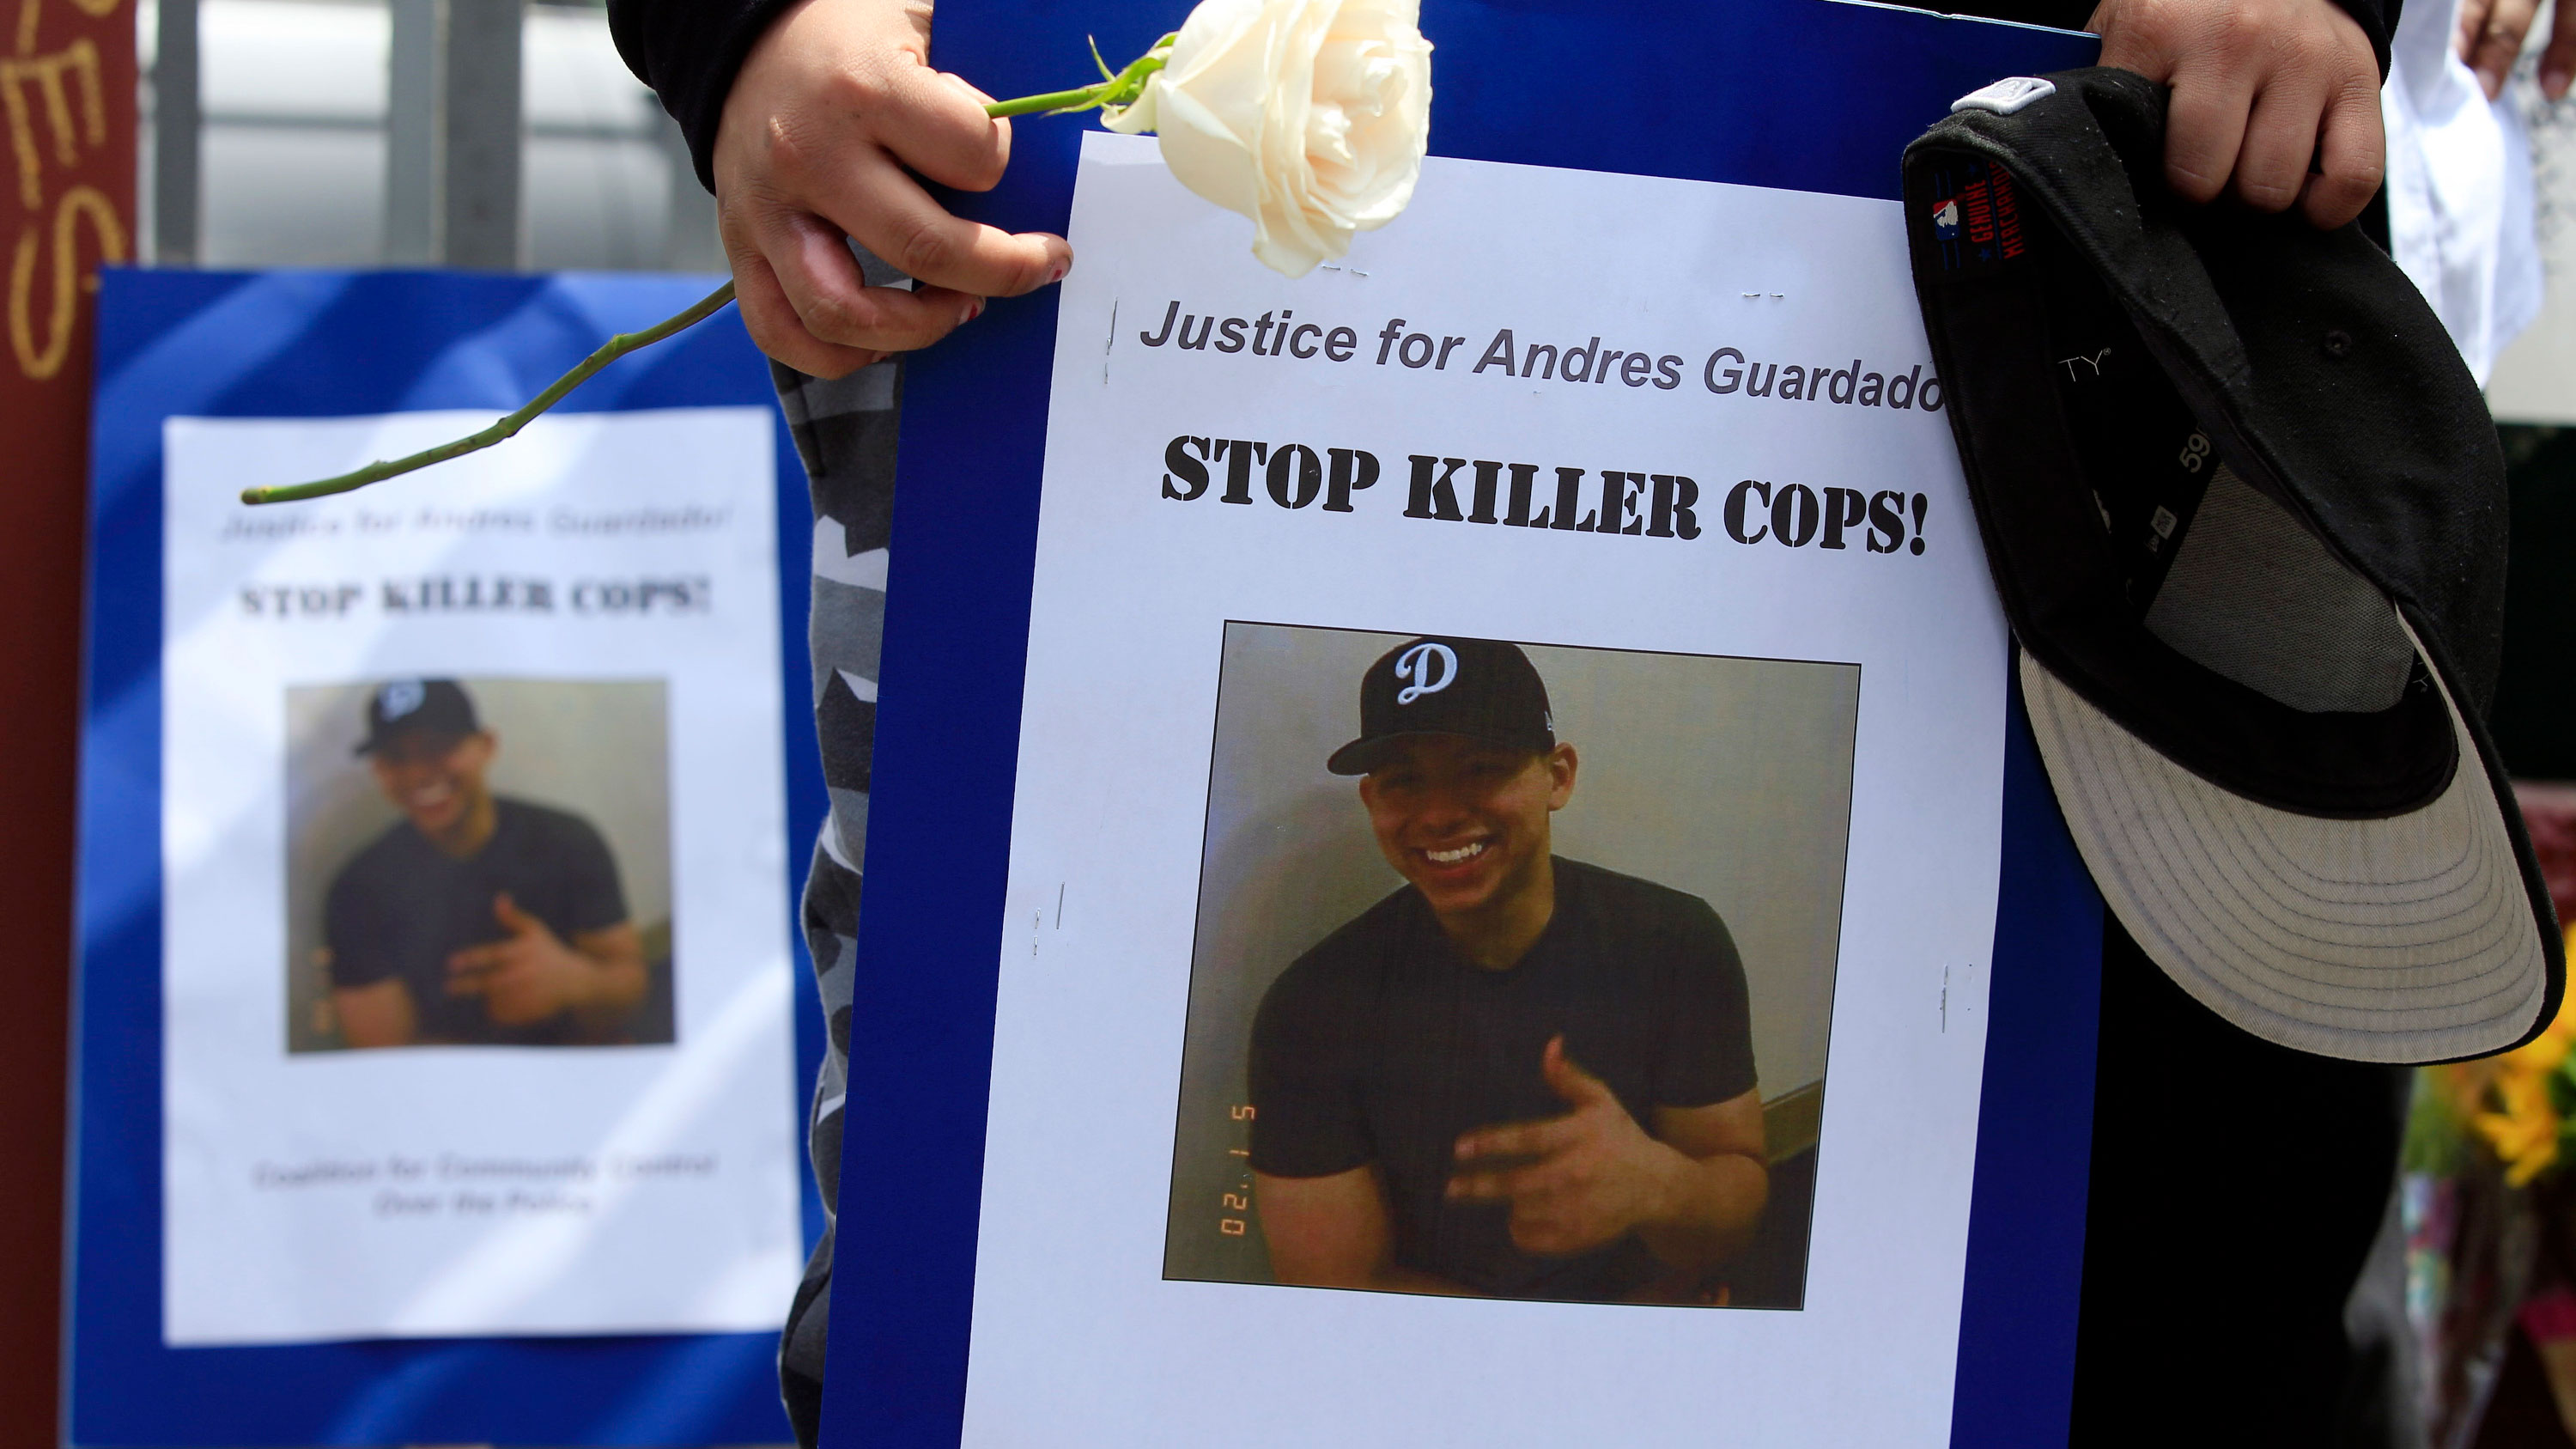 Coroner releases Andres Guardado autopsy results despite sheriff's request